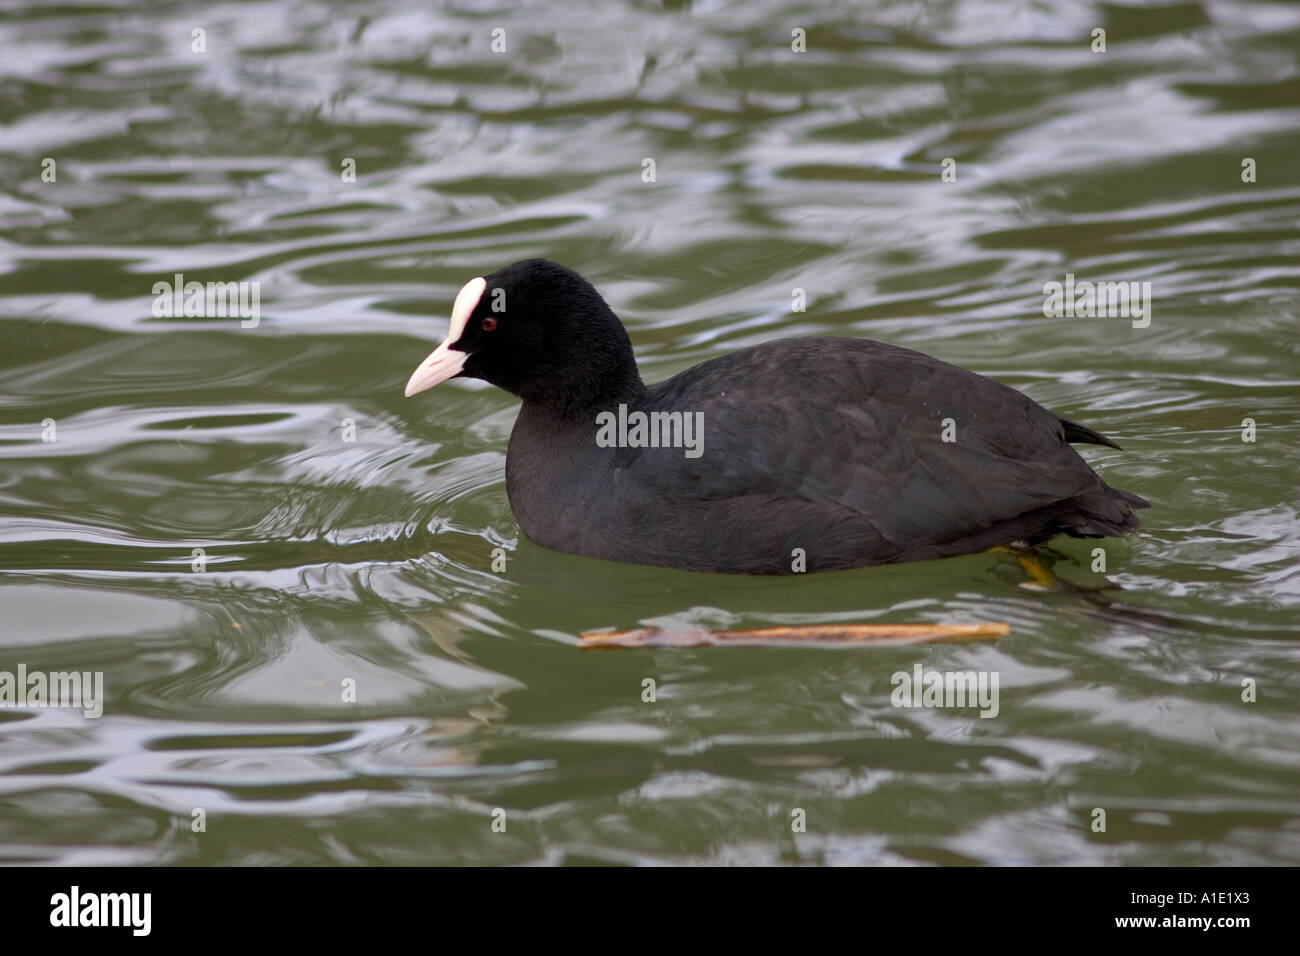 Coot in River Windrush Burford UK Feral birds may be at risk from Avian Flu bird flu virus - Stock Image